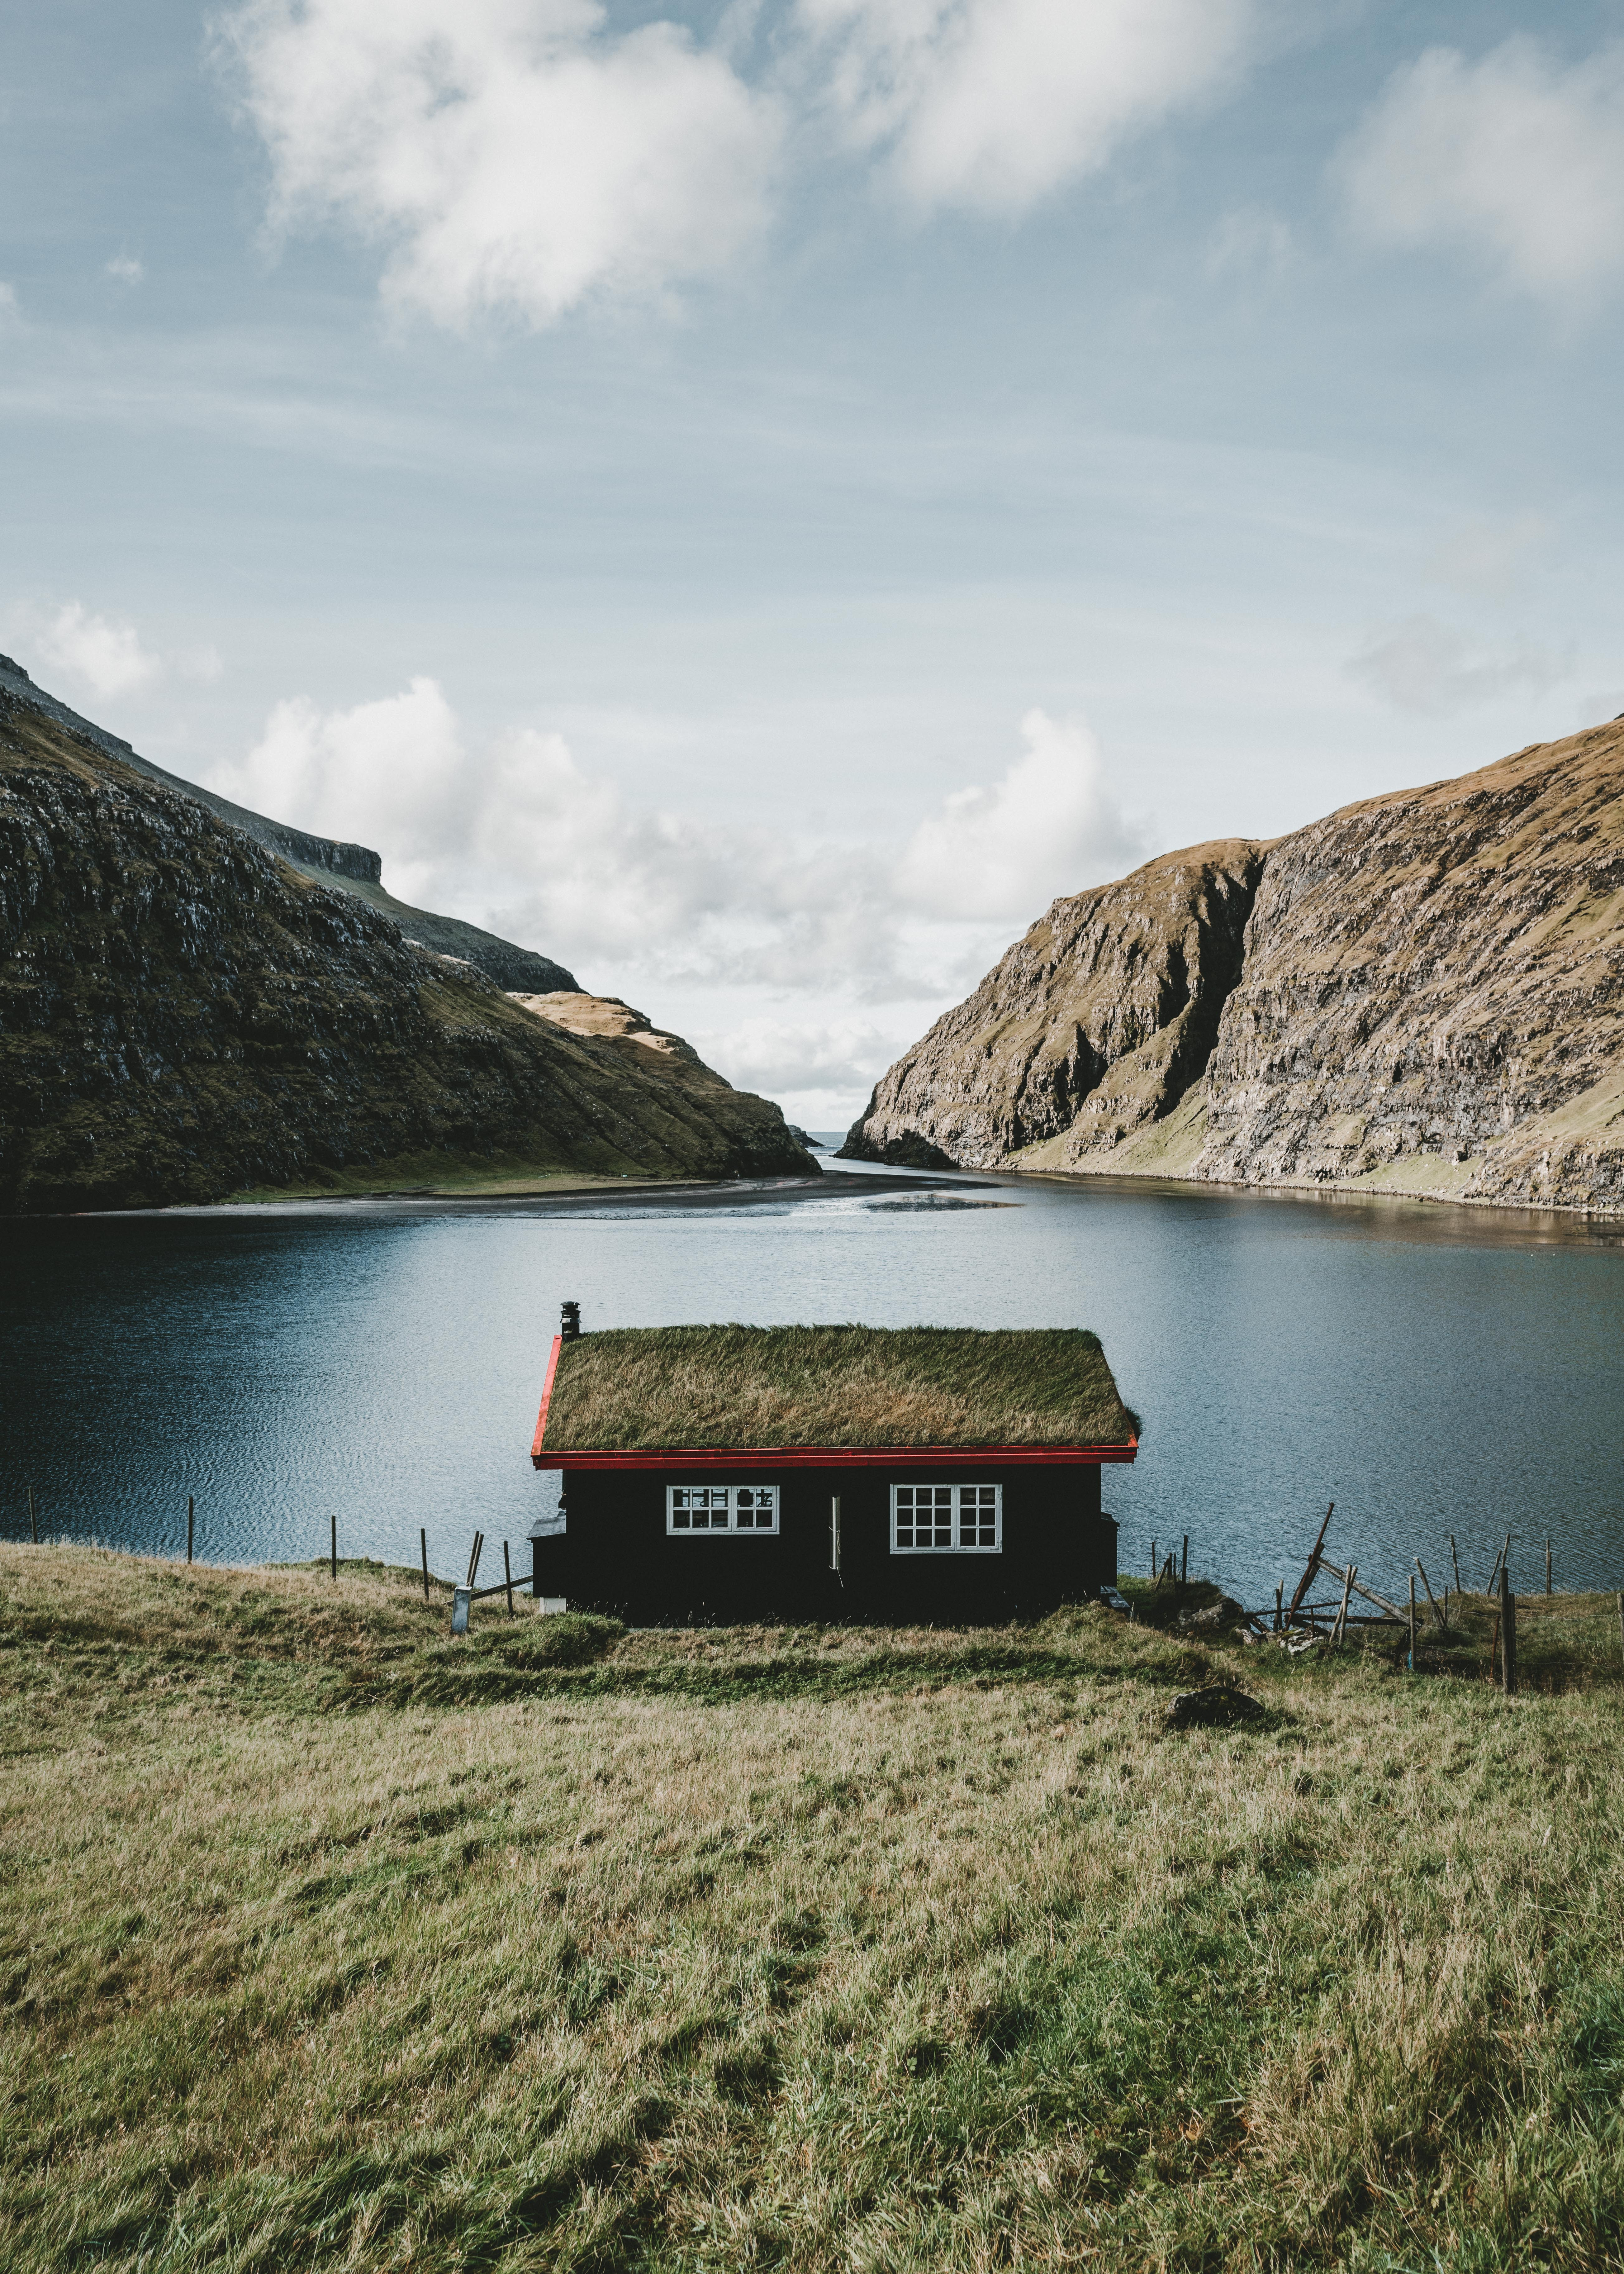 brown wooden shed near body of water across hill at daytime